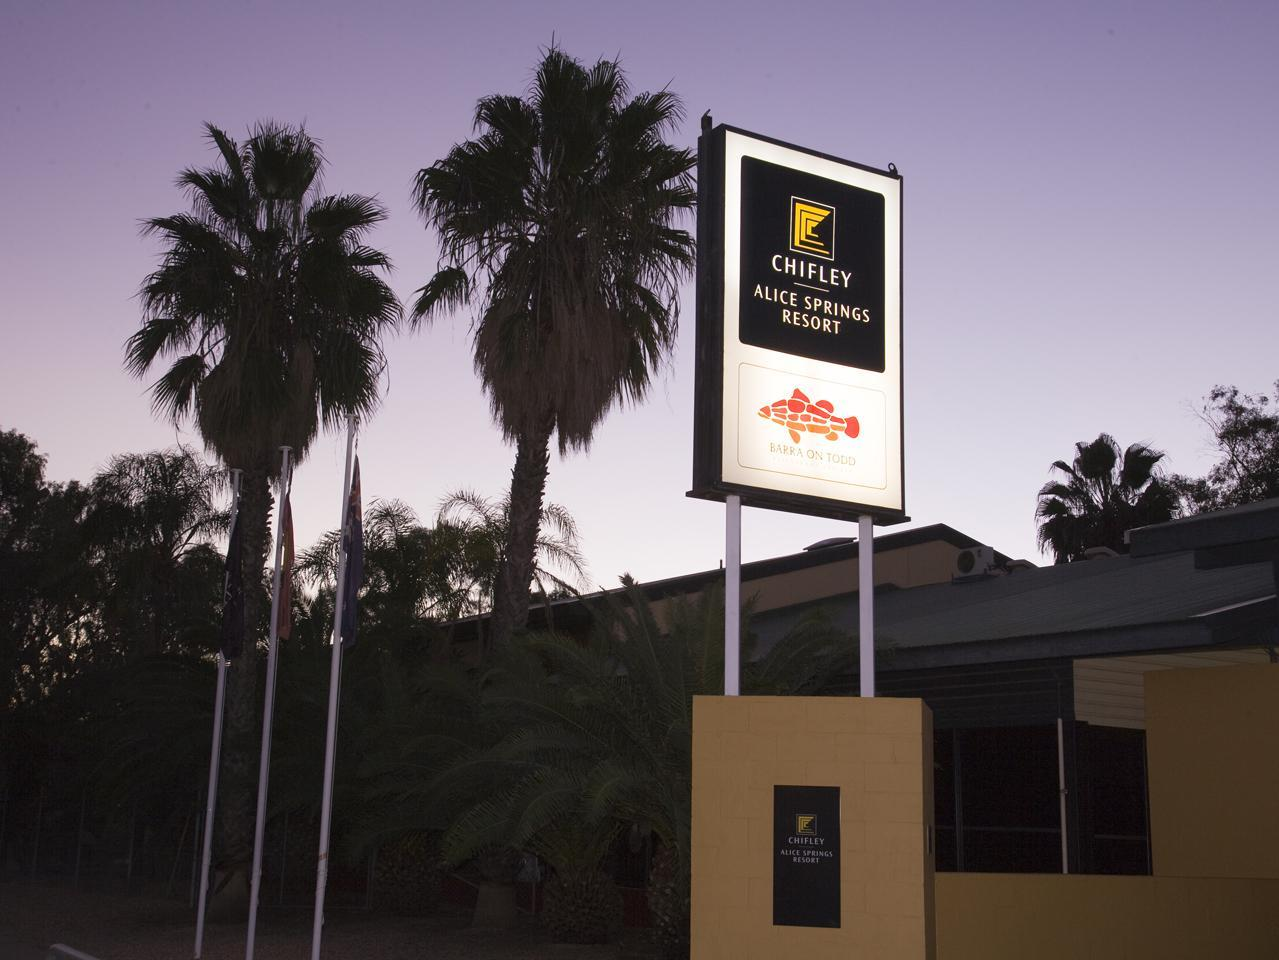 Hotell Chifley Alice Springs Resort